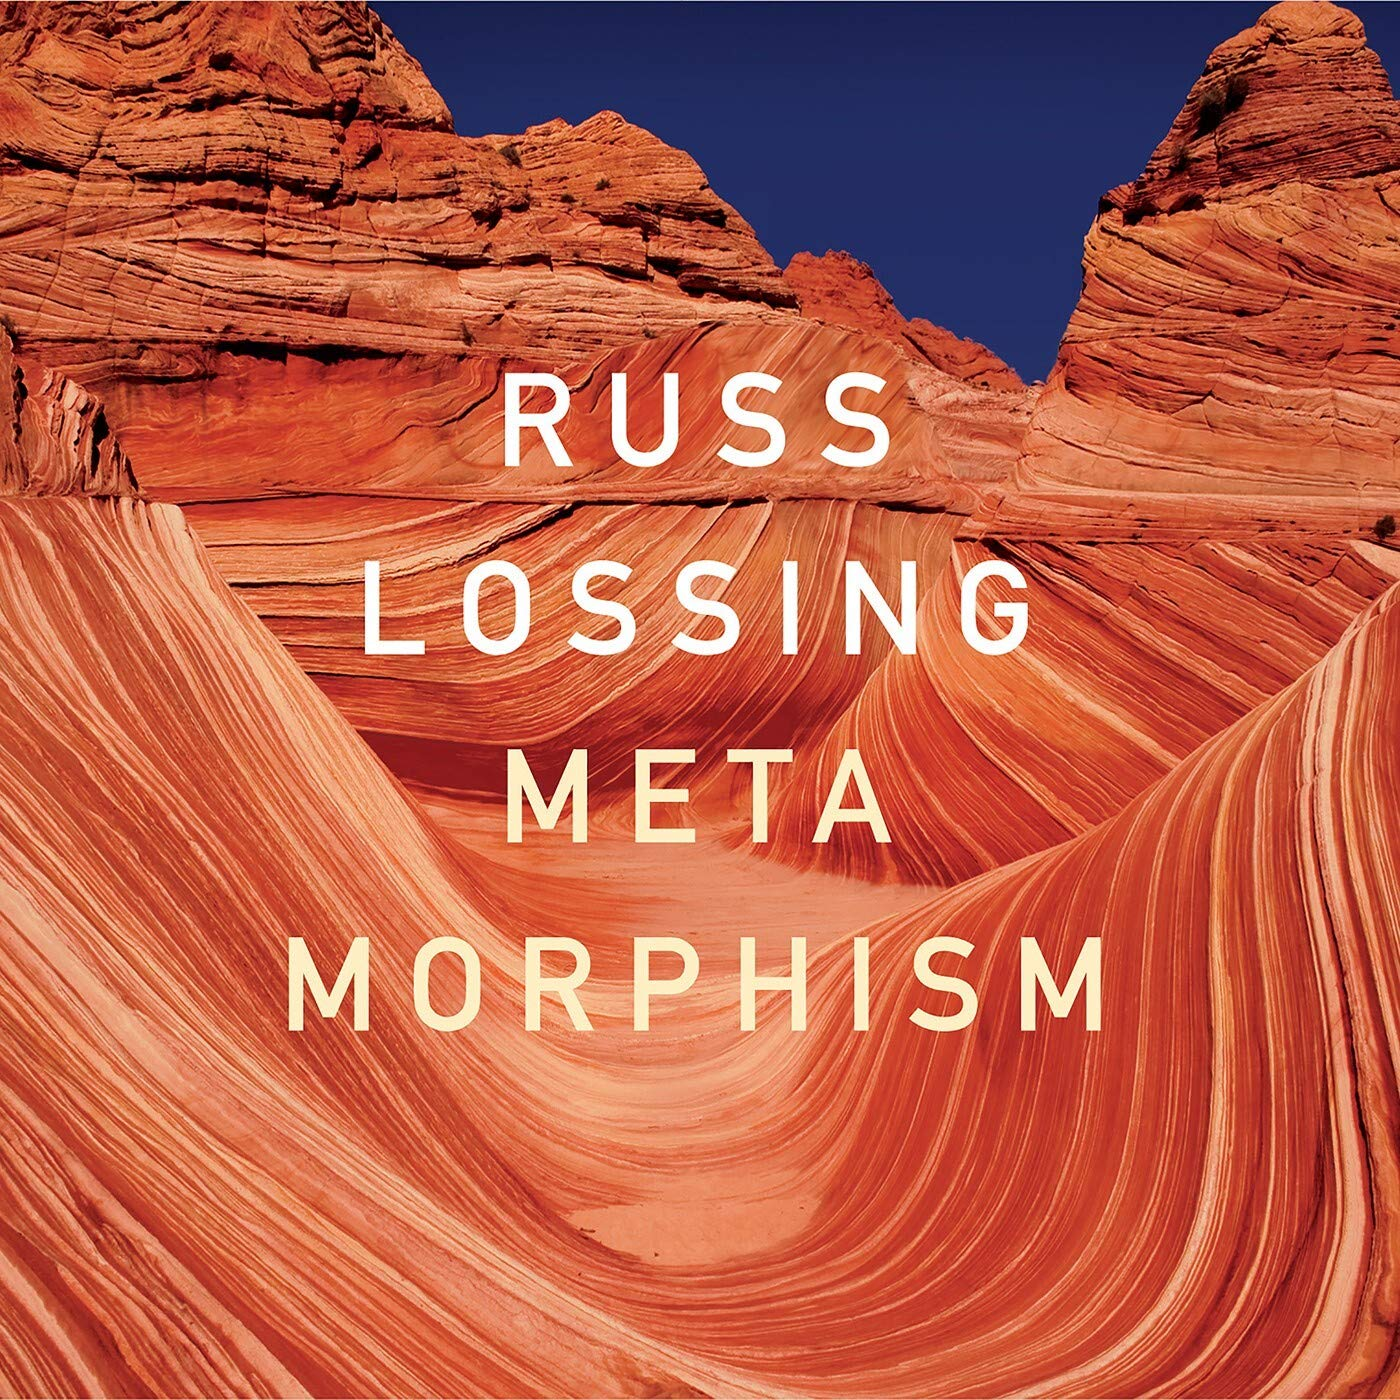 RUSS LOSSING - Metamorphism cover